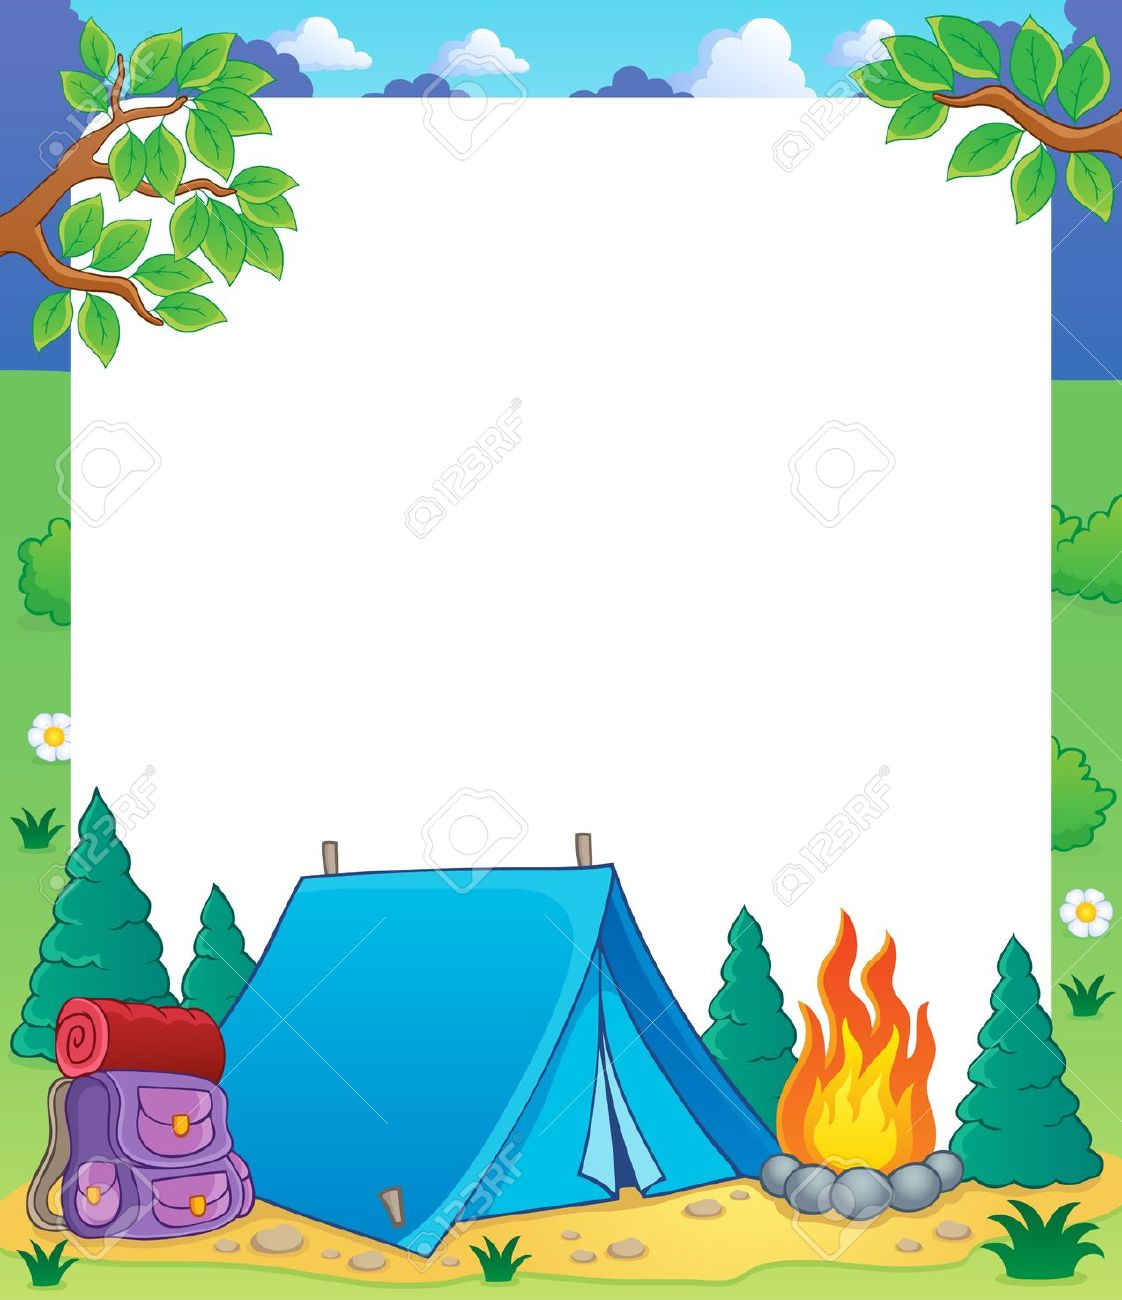 Camping background clipart » Clipart Station.